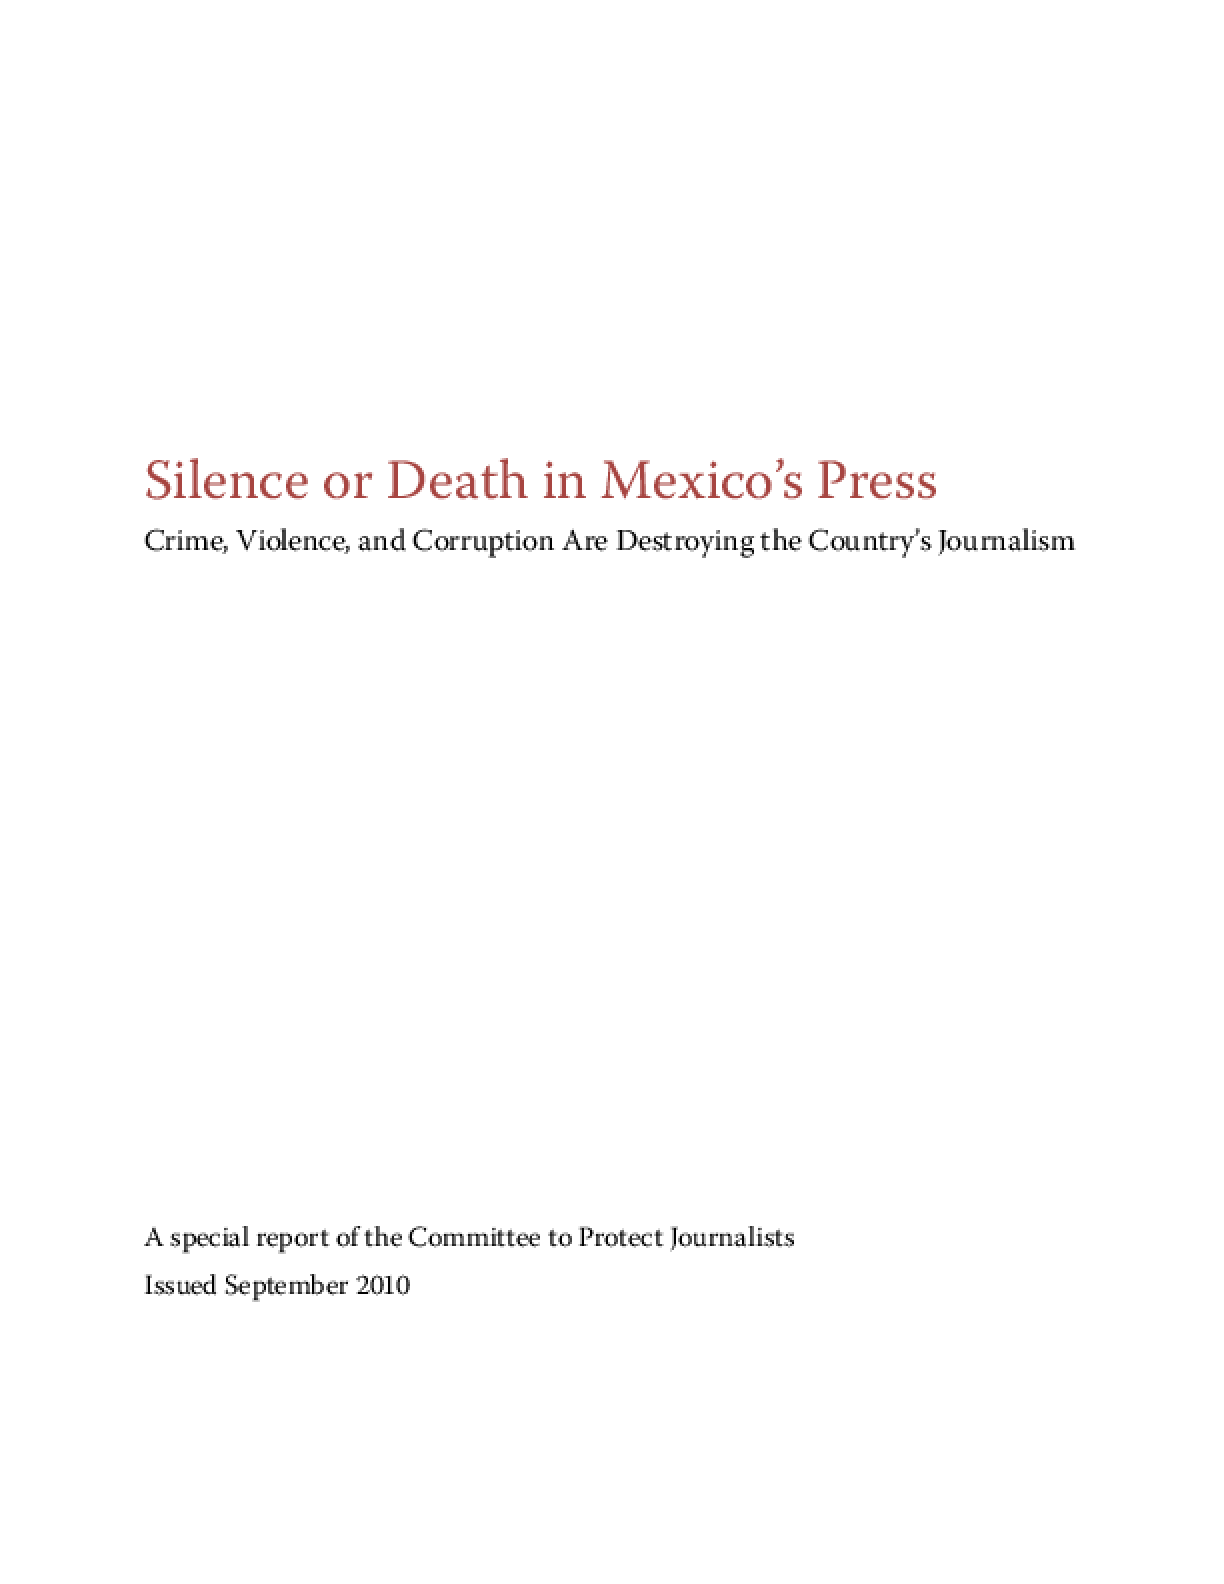 Silence or Death in Mexico's Press: Crime, Violence, and Corruption Are Destroying the Country's Journalism